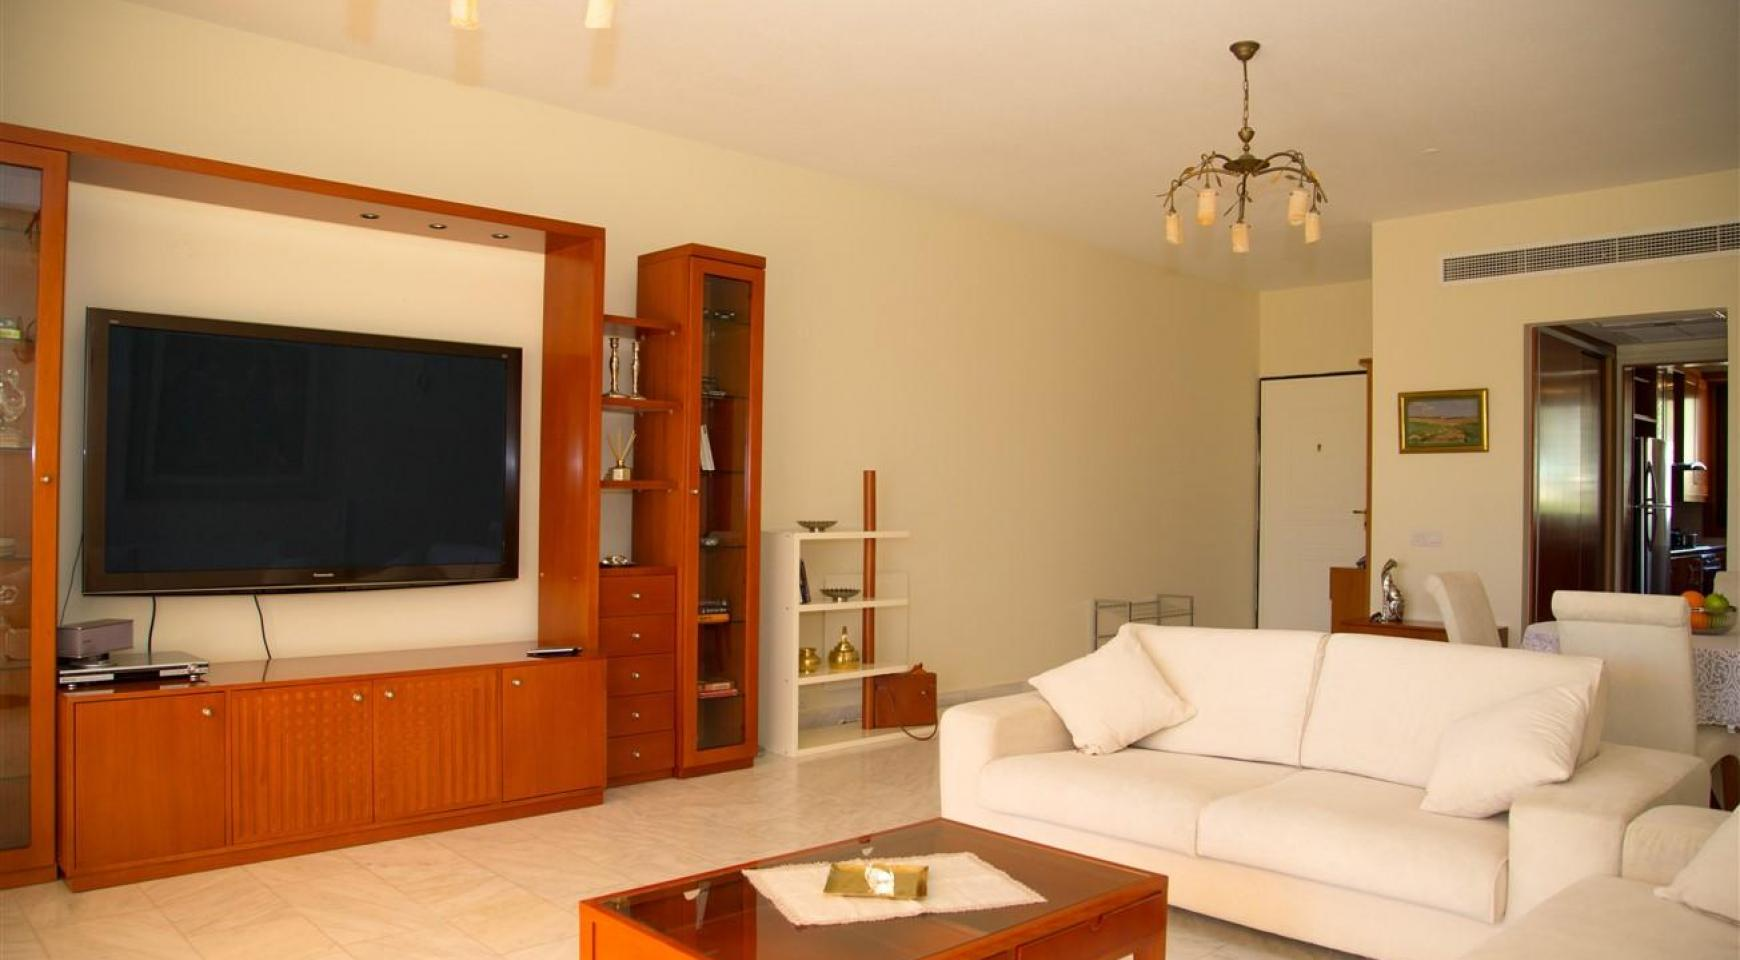 Luxury 3 Bedroom Apartment Thera 102 by the Sea - 34